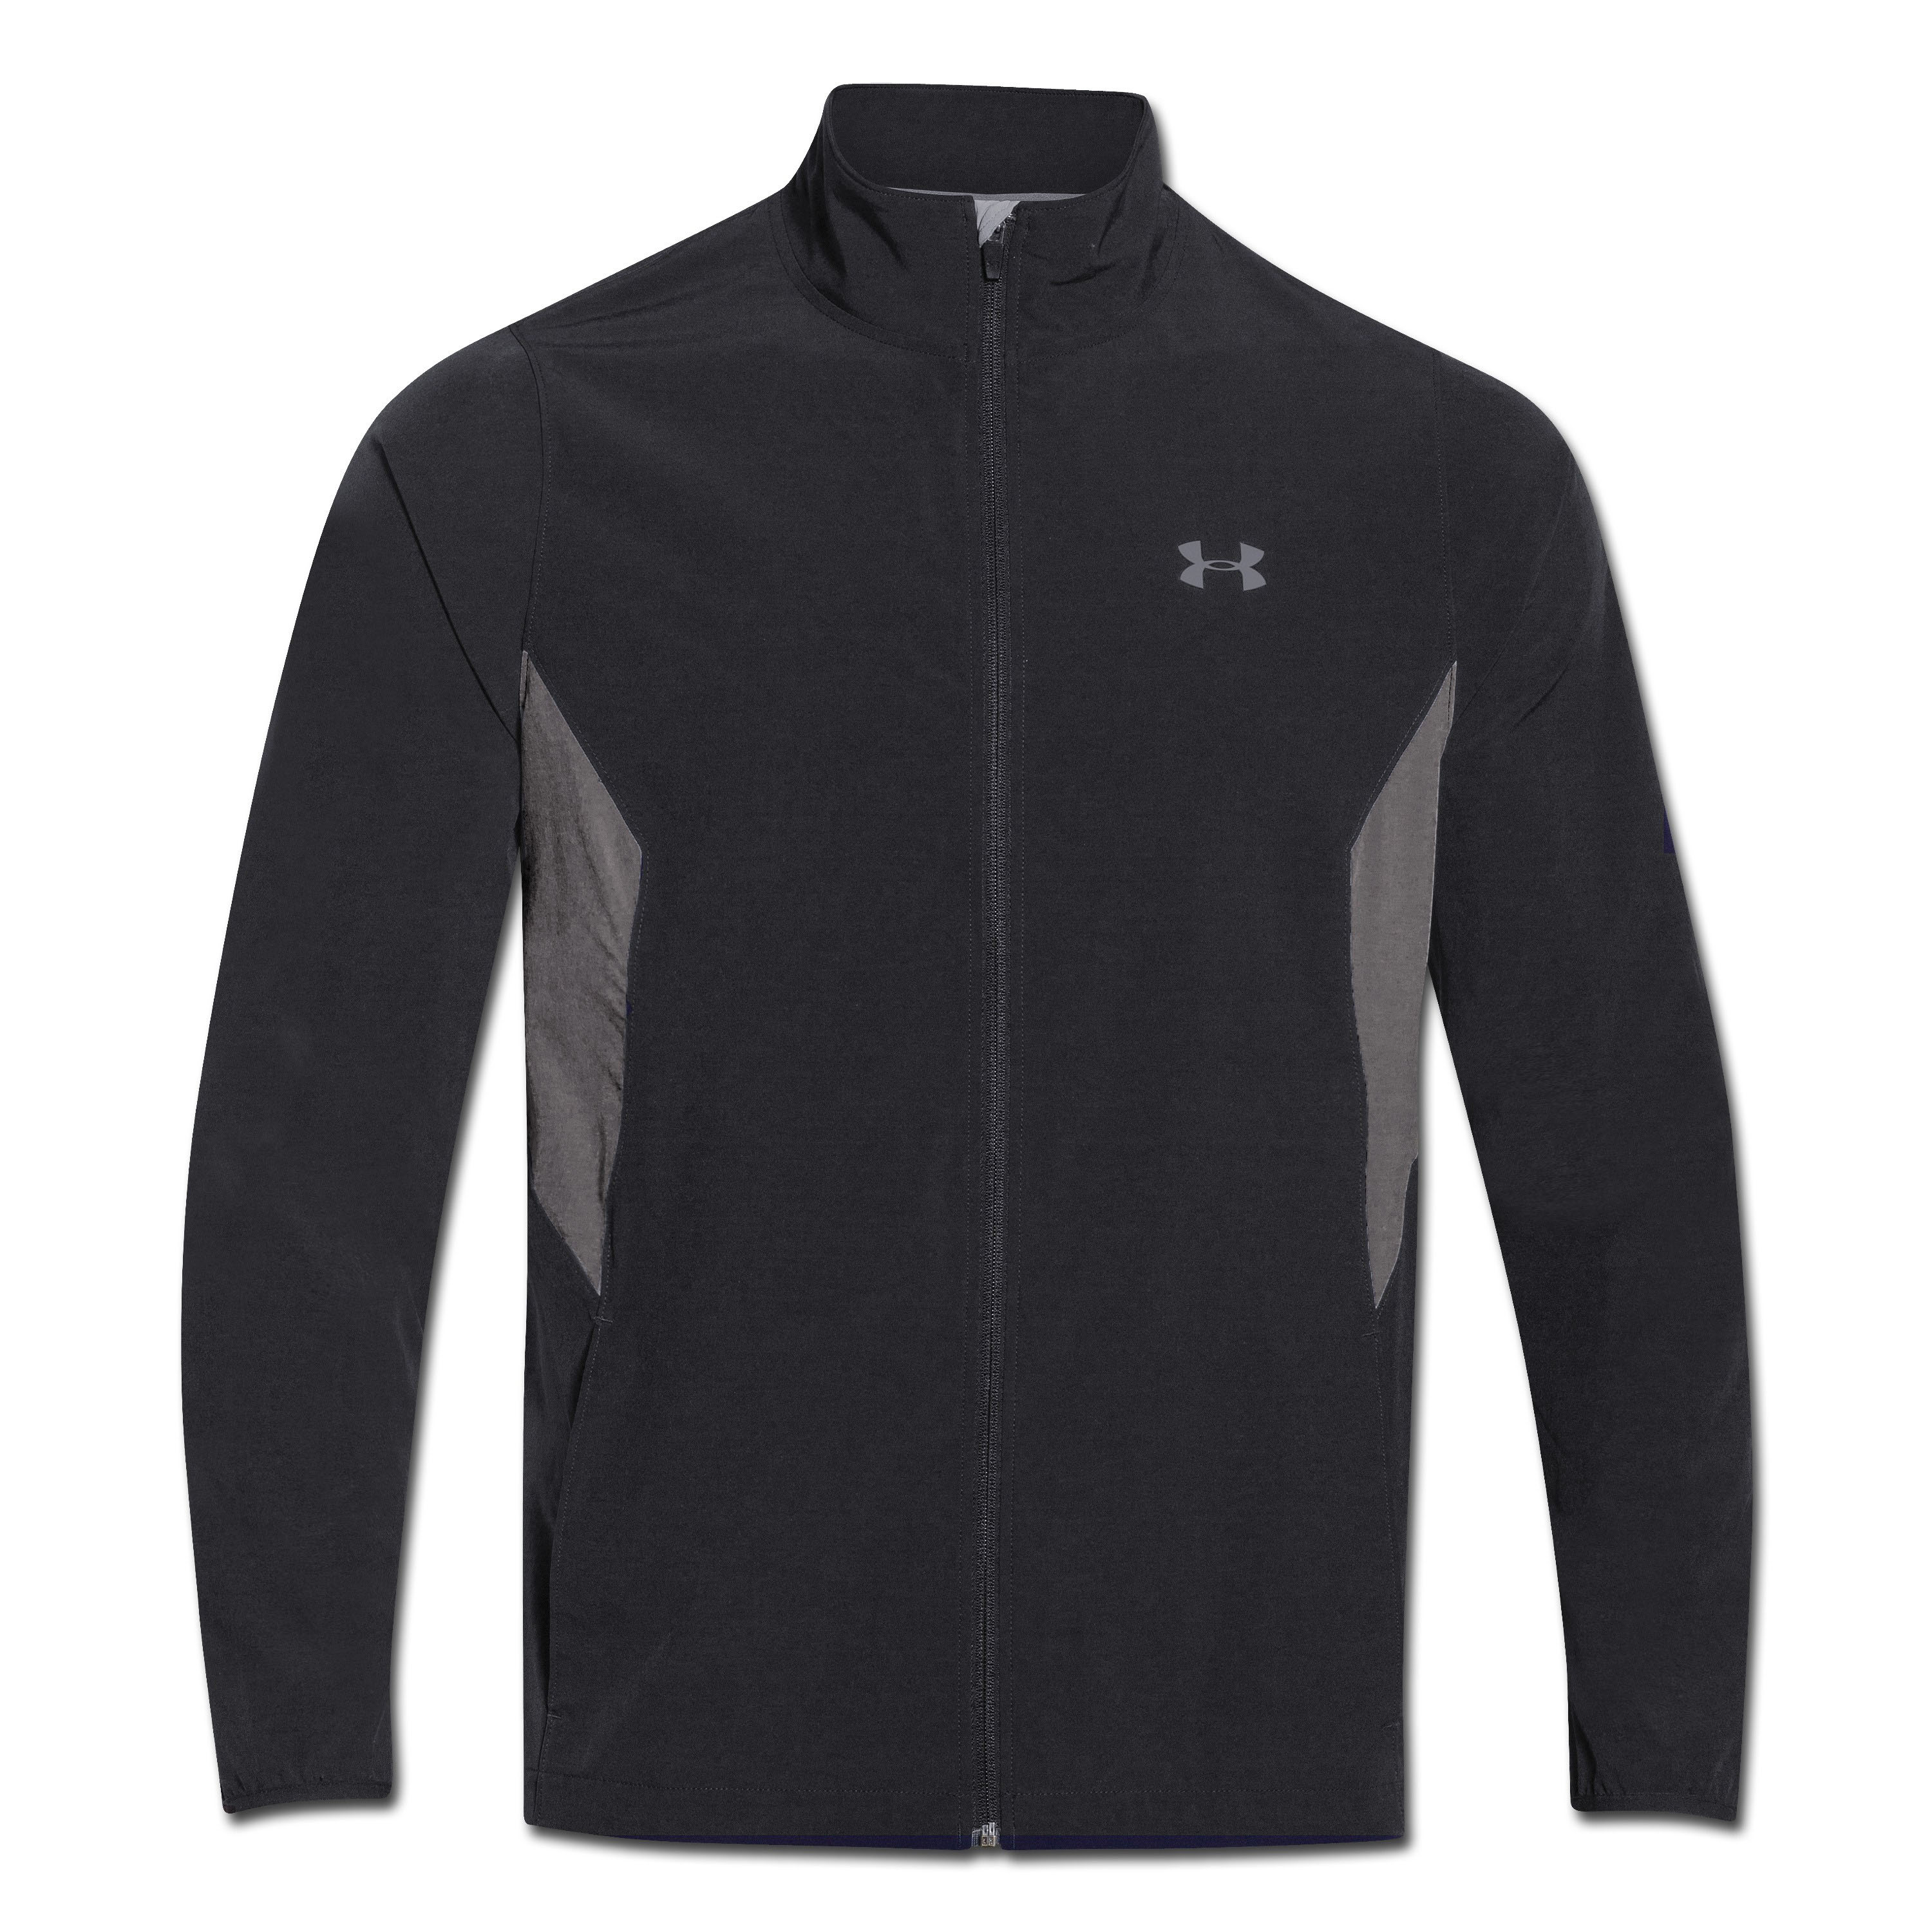 Under Armour Stretch Jacket Woven Track black